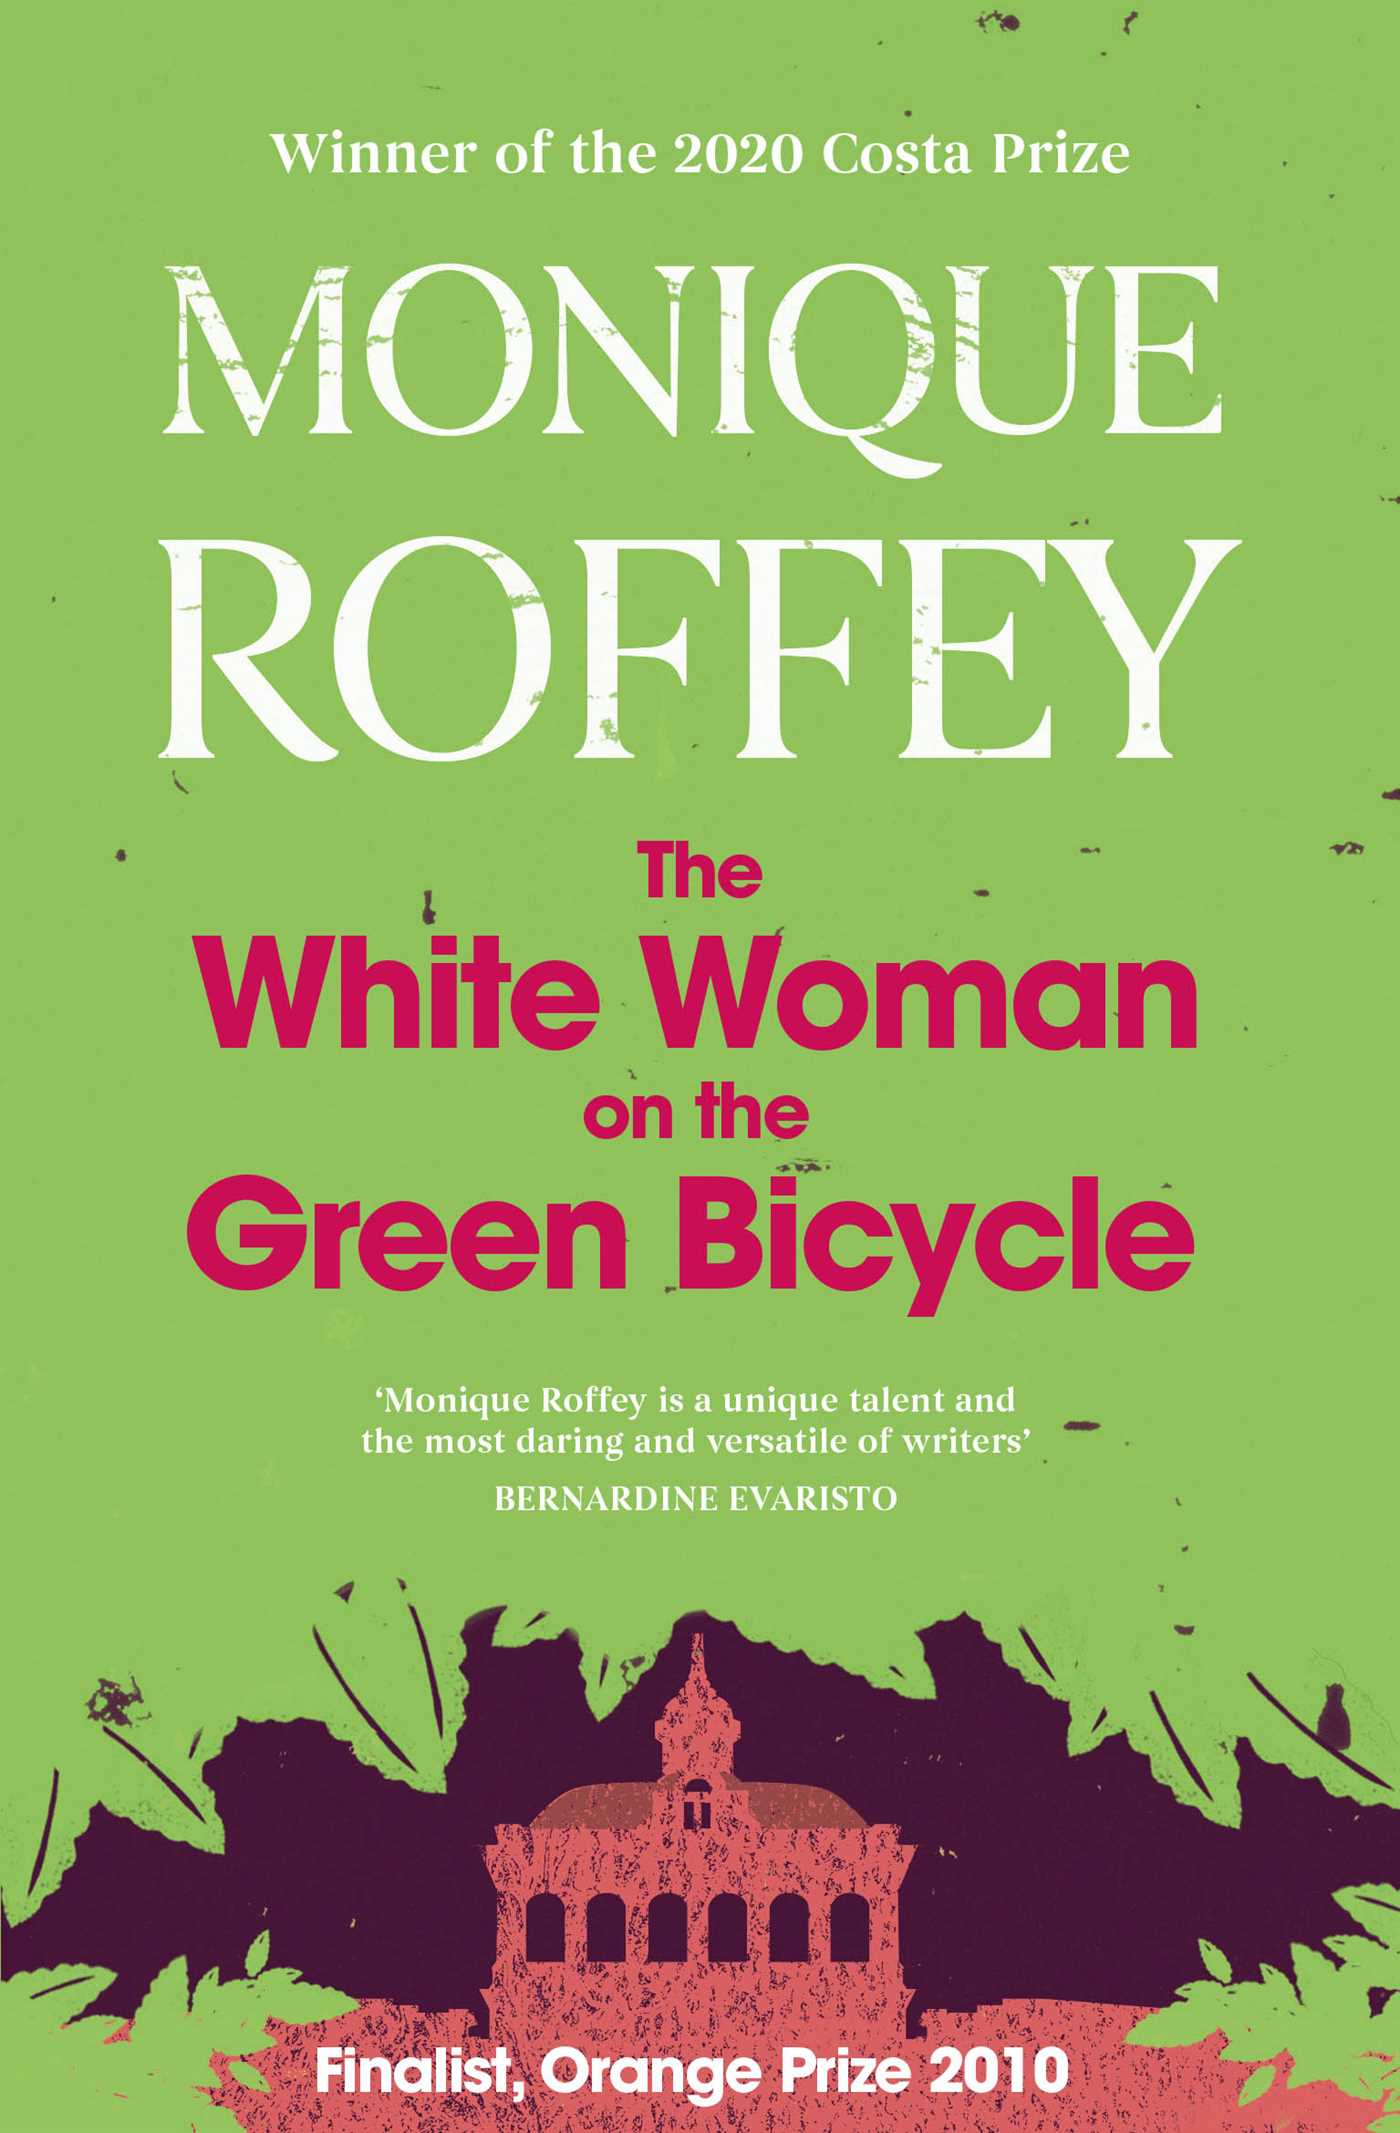 The white woman on the green bicycle 9781847378026 hr